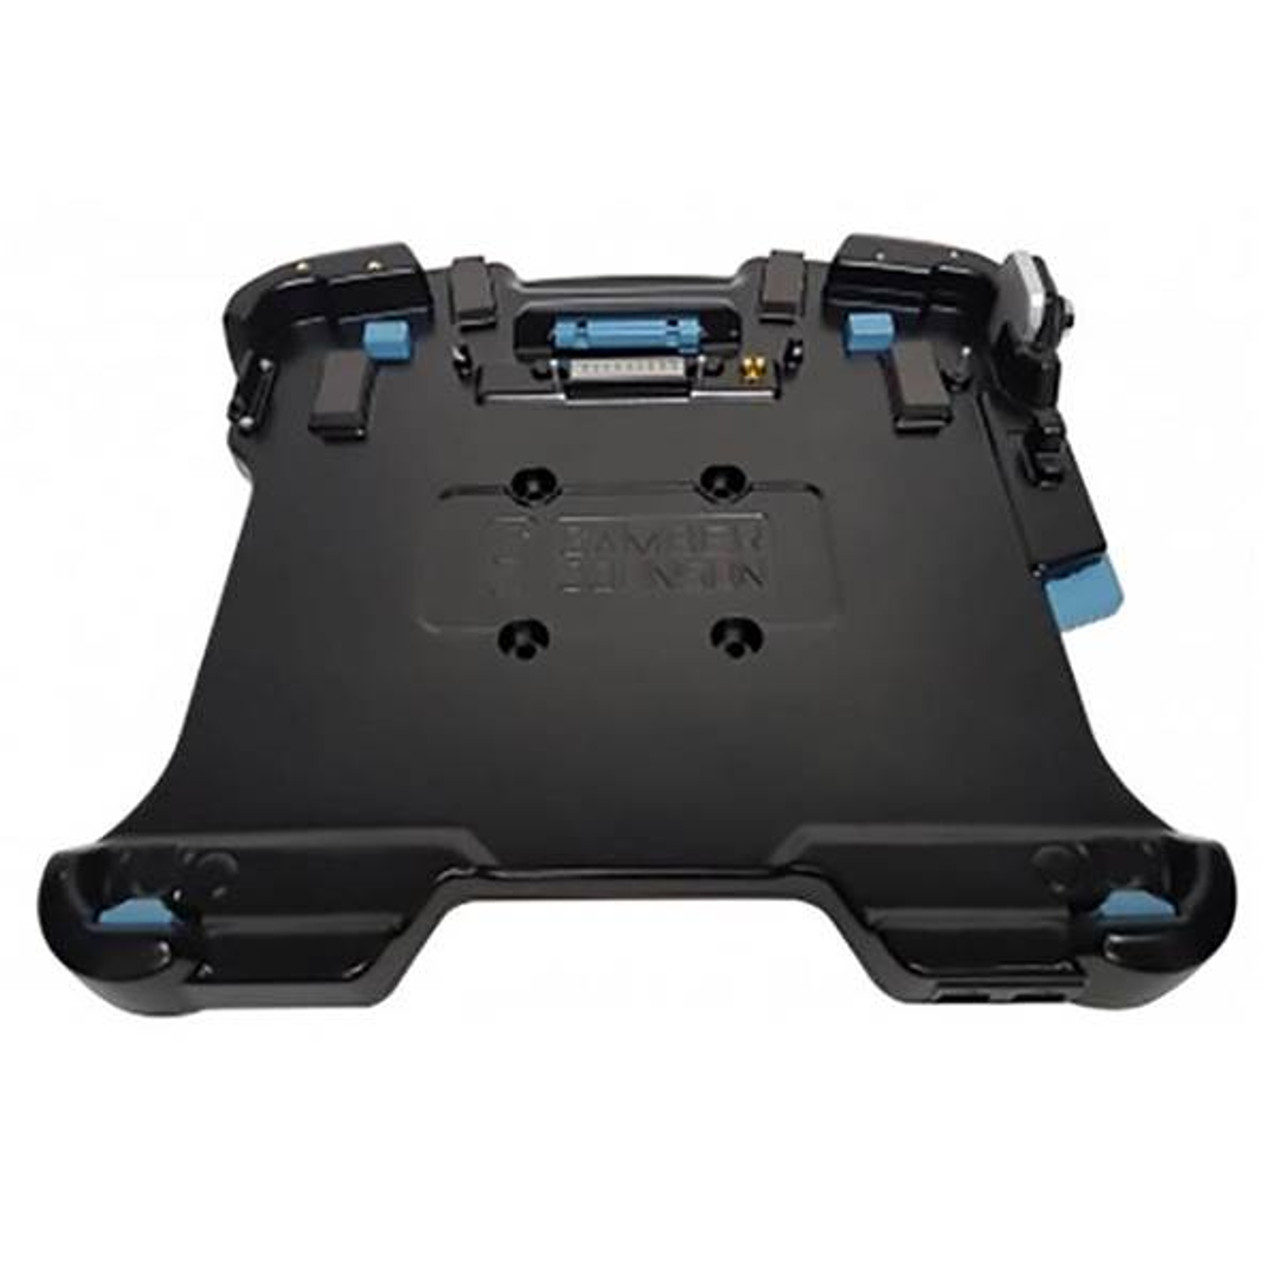 Image for Panasonic CF-33 Laptop Model Vehicle Dock with Dual Pass Through - GJ33V07 CX Computer Superstore